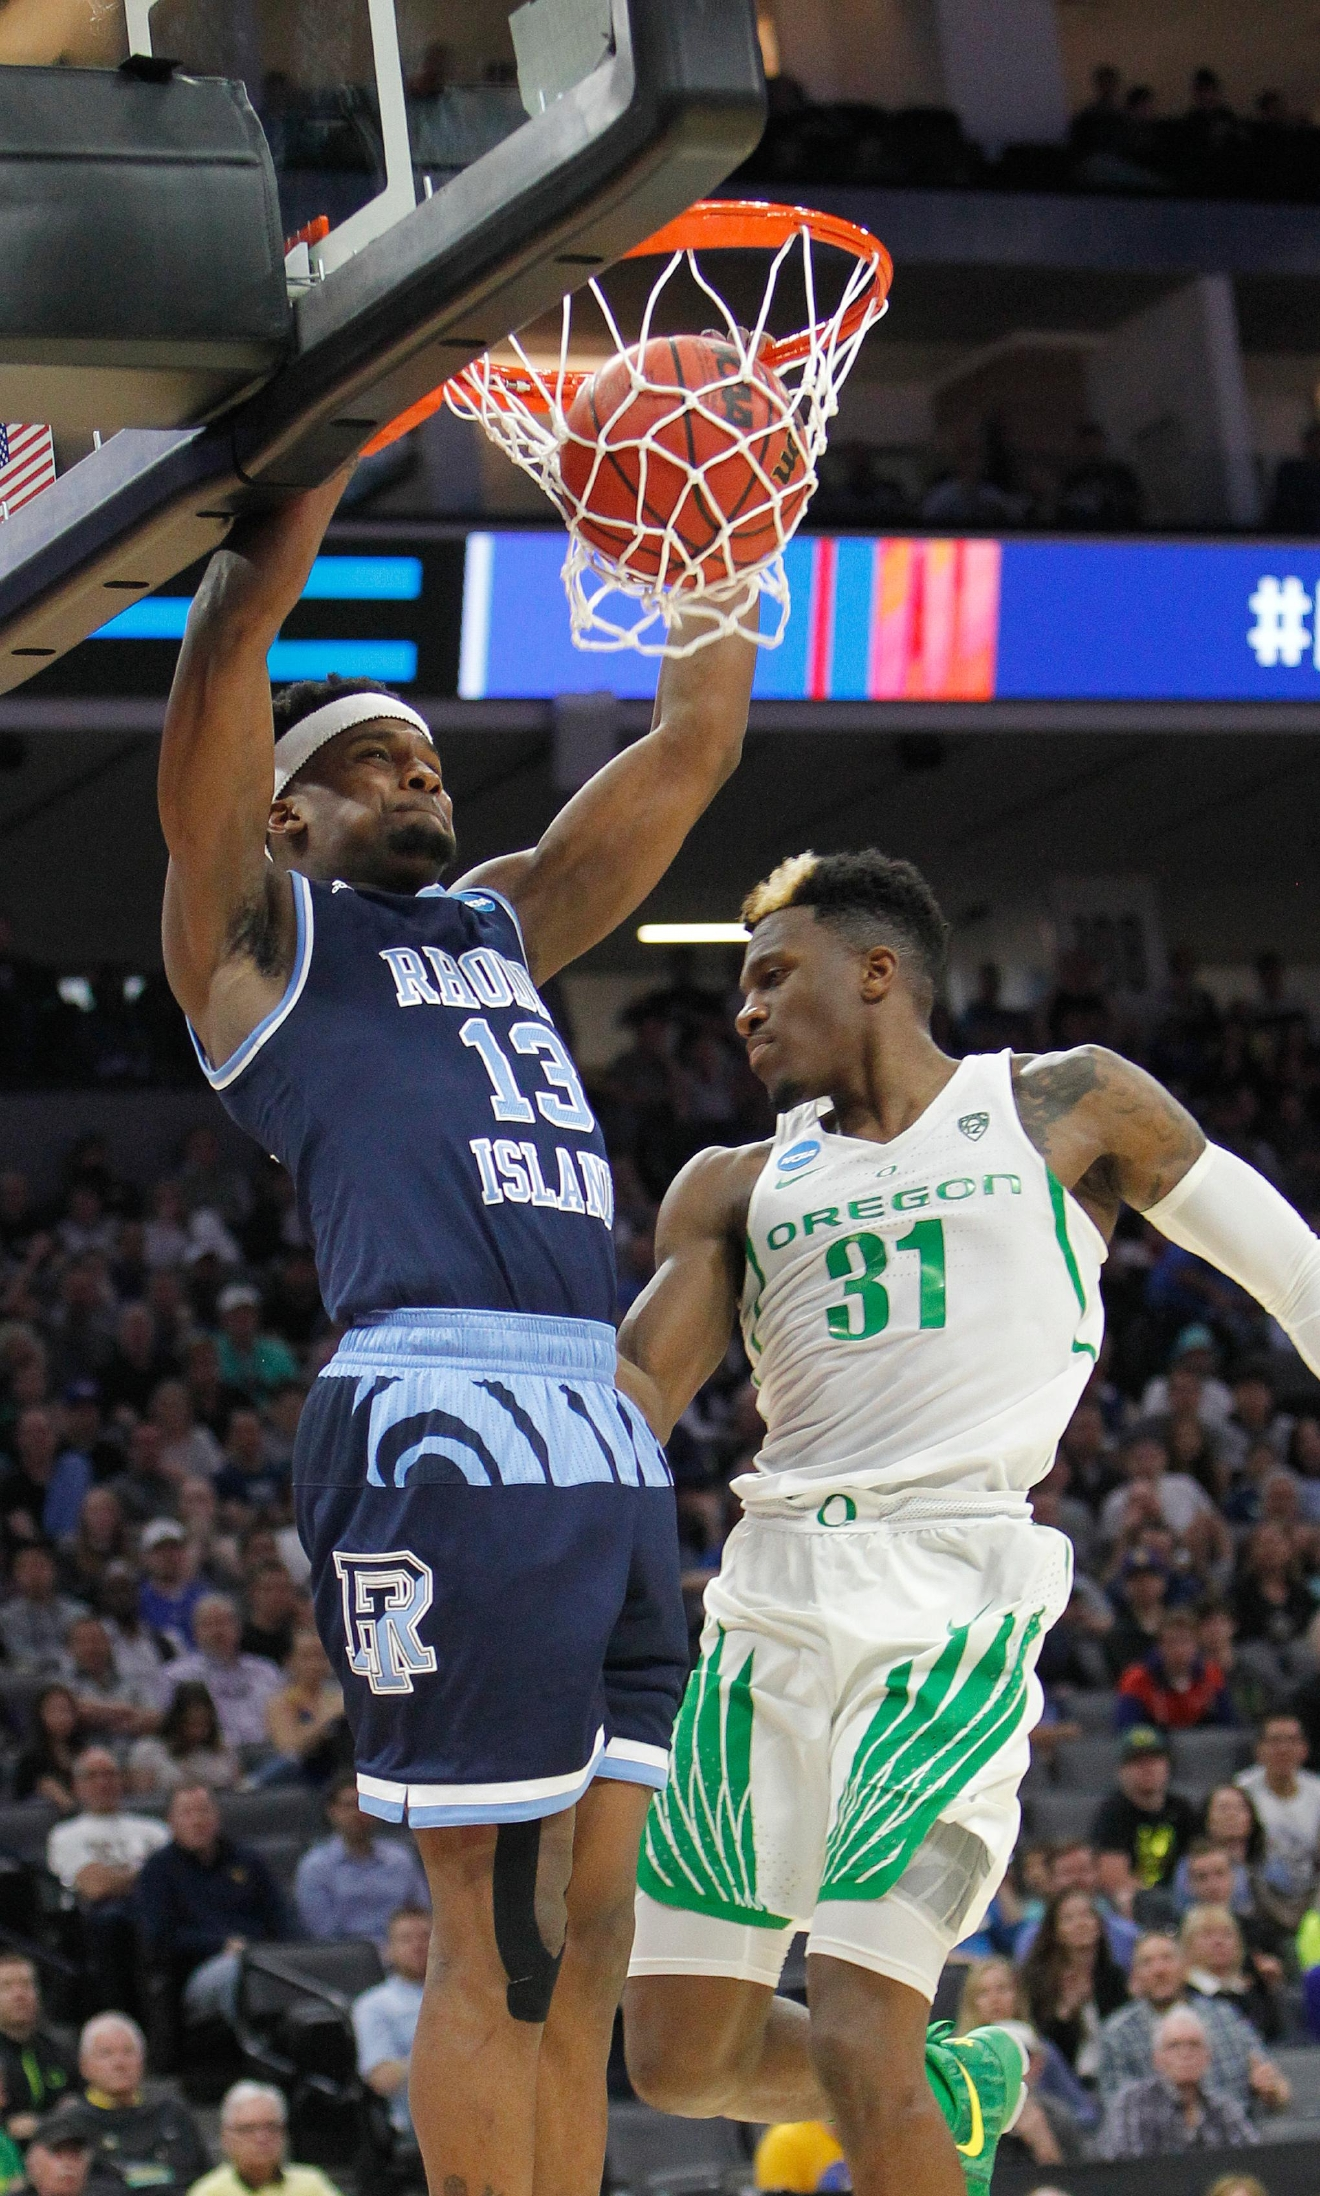 Rhode Island guard Stanford Robinson, left, stuffs against Oregon Ducks guard Dylan Ennis during the first half of a second-round game of the NCAA men's college basketball tournament in Sacramento, Calif., Sunday, March 19, 2017. (AP Photo/Steve Yeater)